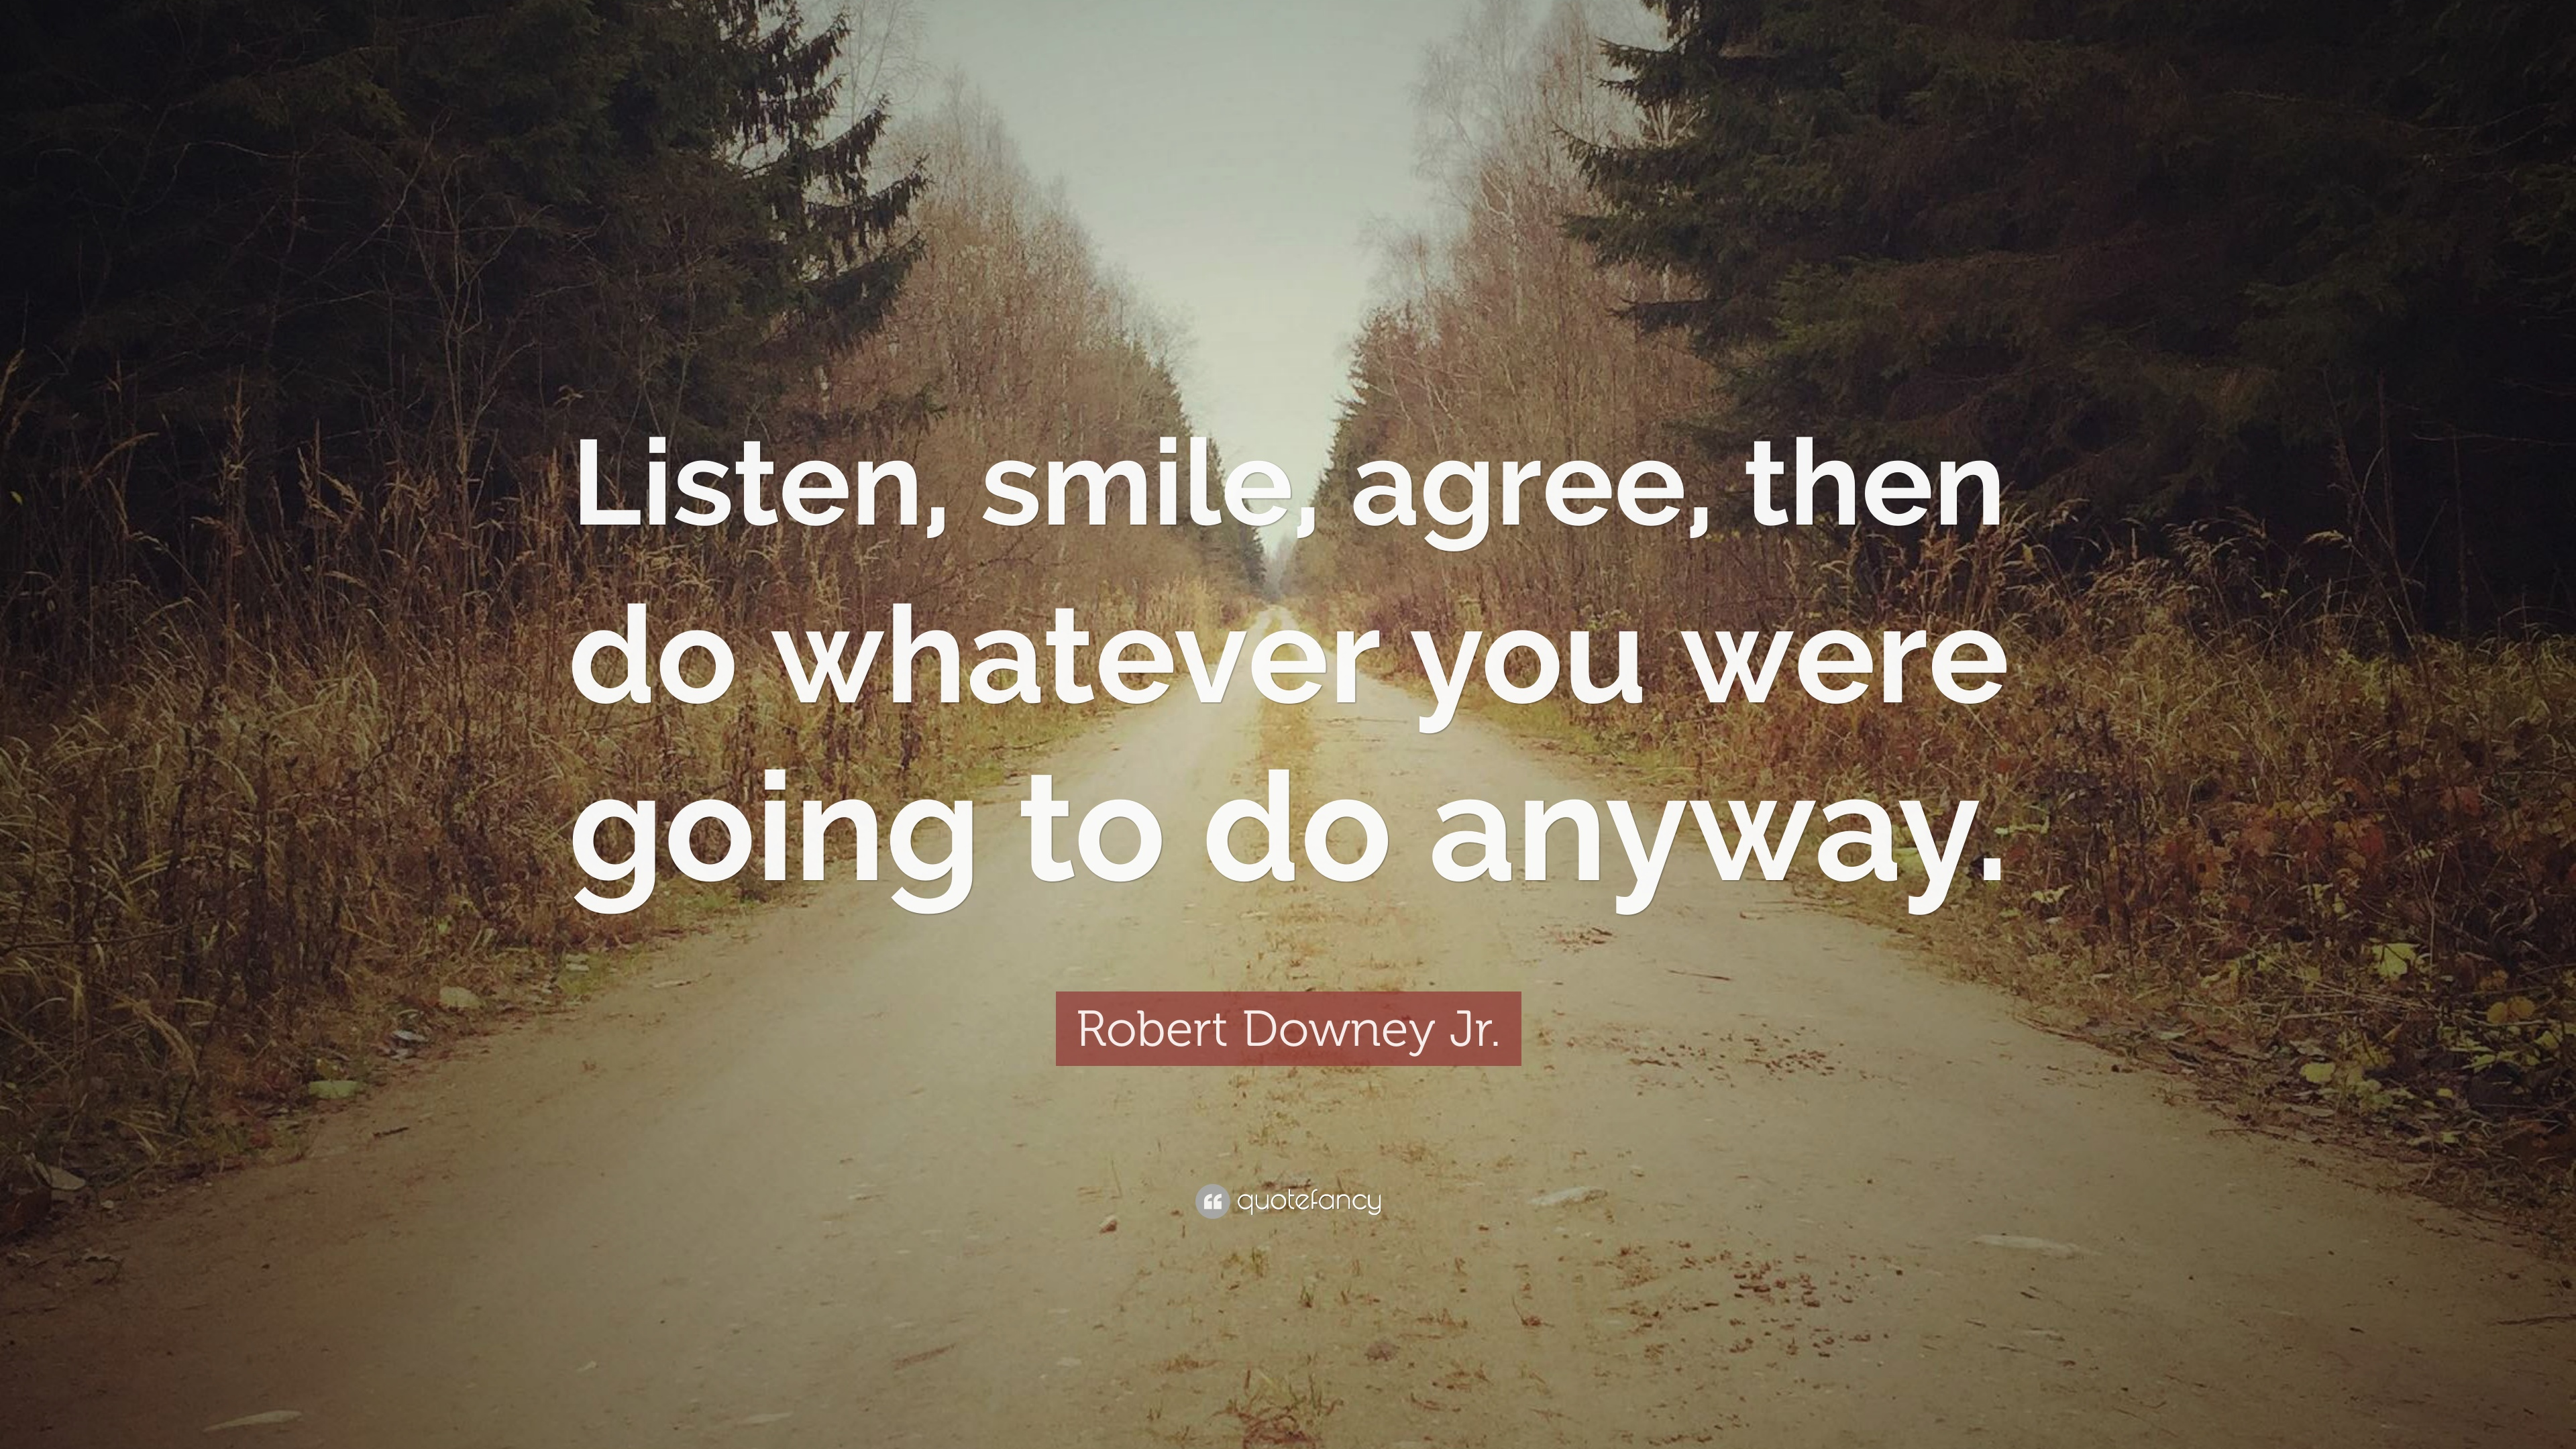 Robert Downey Jr Quote Listen Smile Agree Then Do Whatever You